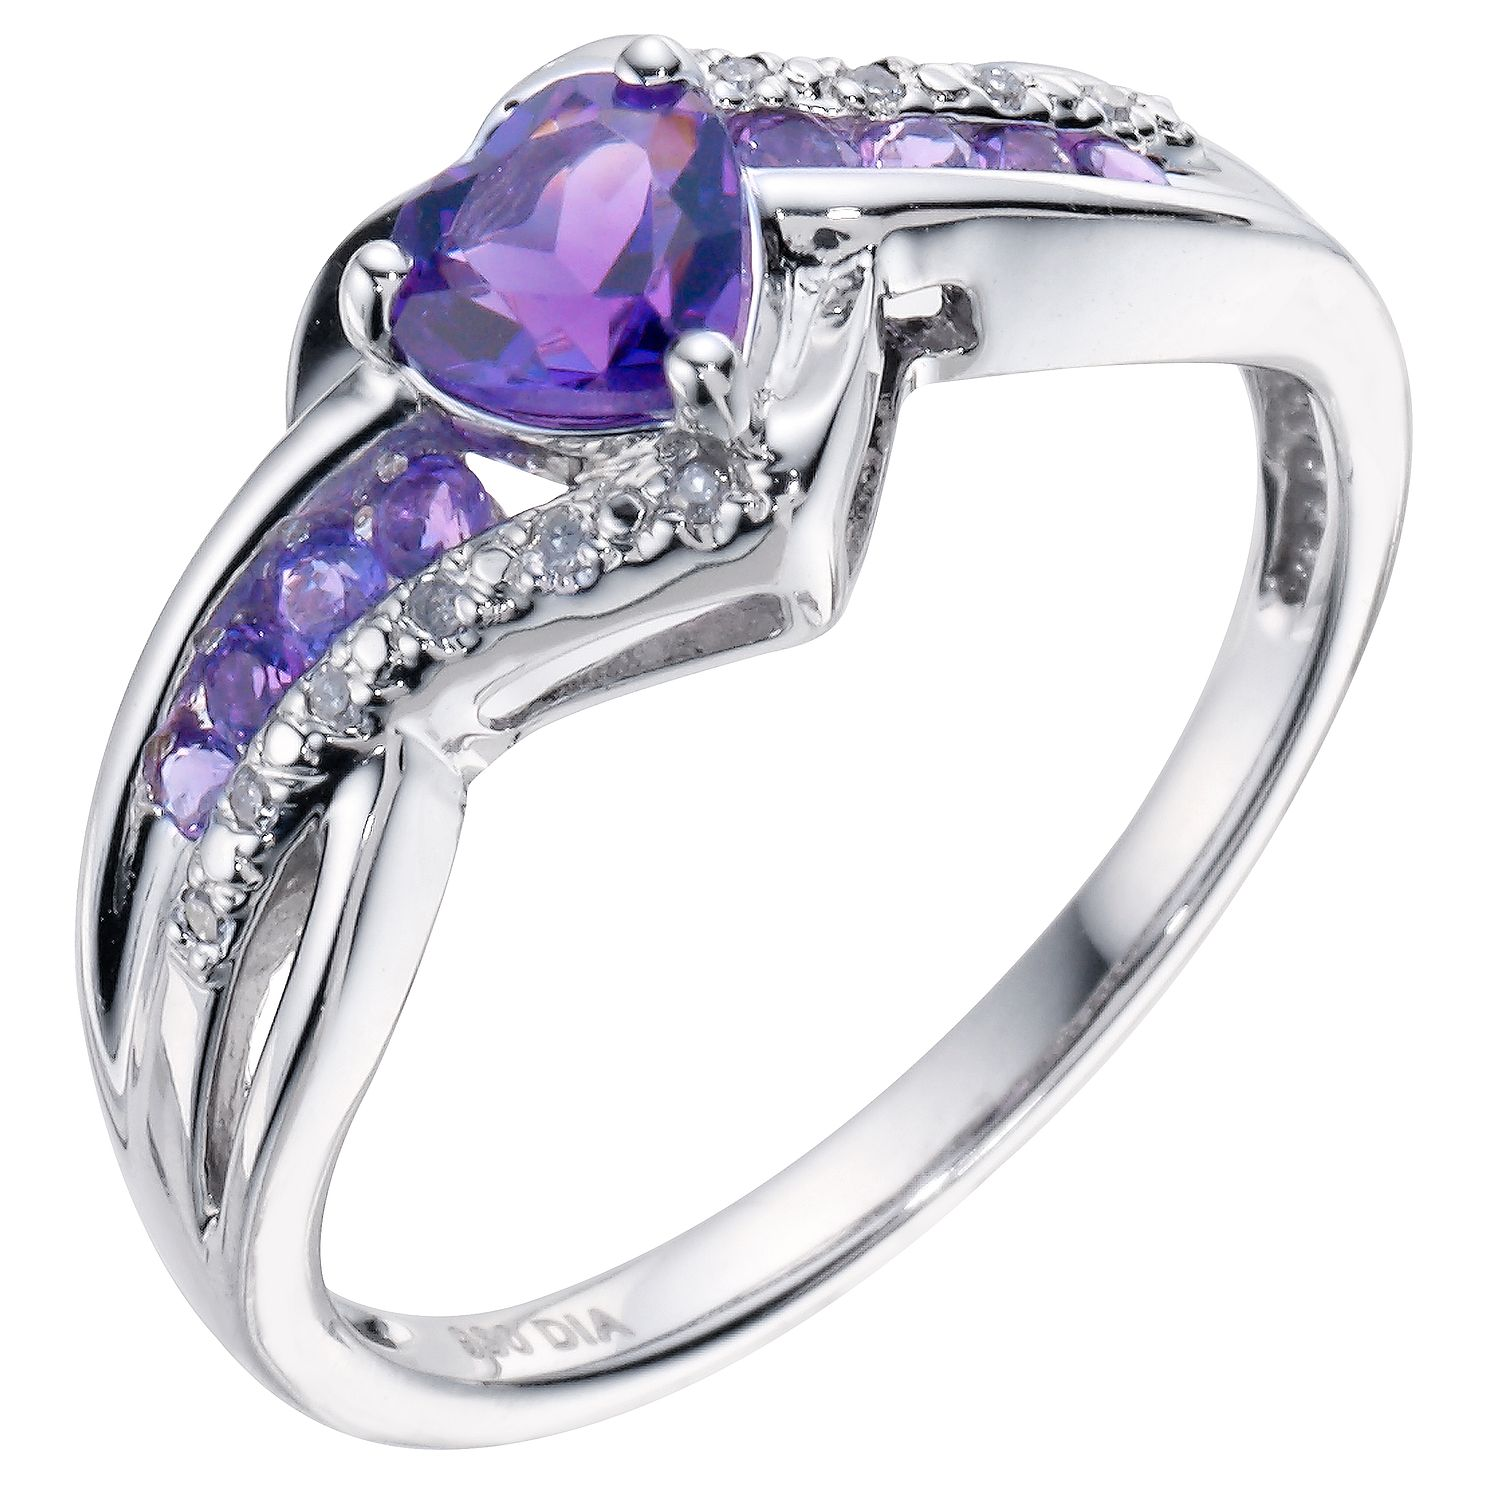 free amethyst wedding sterling silver purple stunning us products rings shipping romantic solitaire plated sizes ring